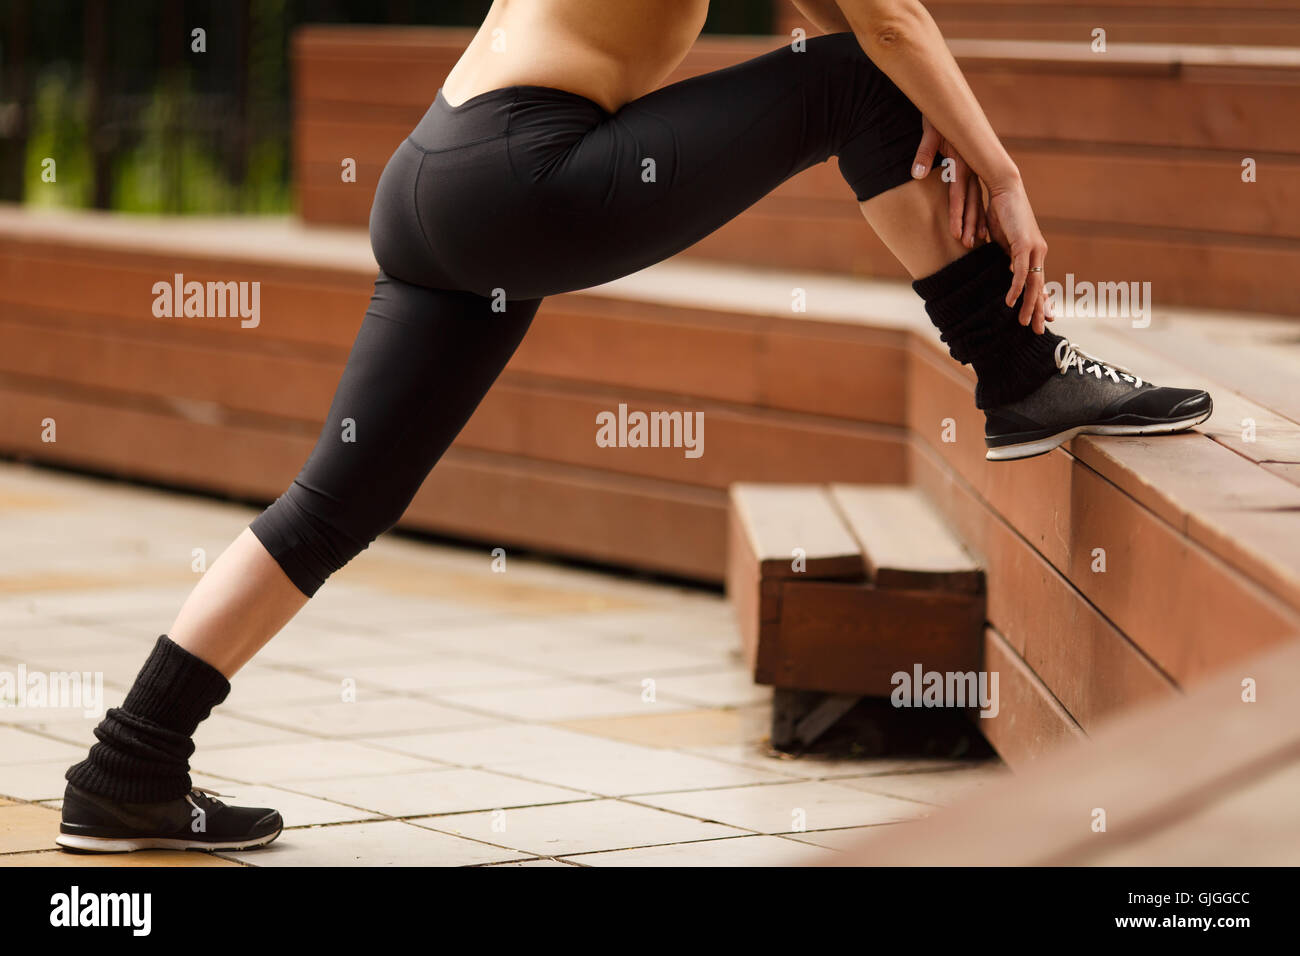 Fitness woman stretching legs before training outdoors - Stock Image